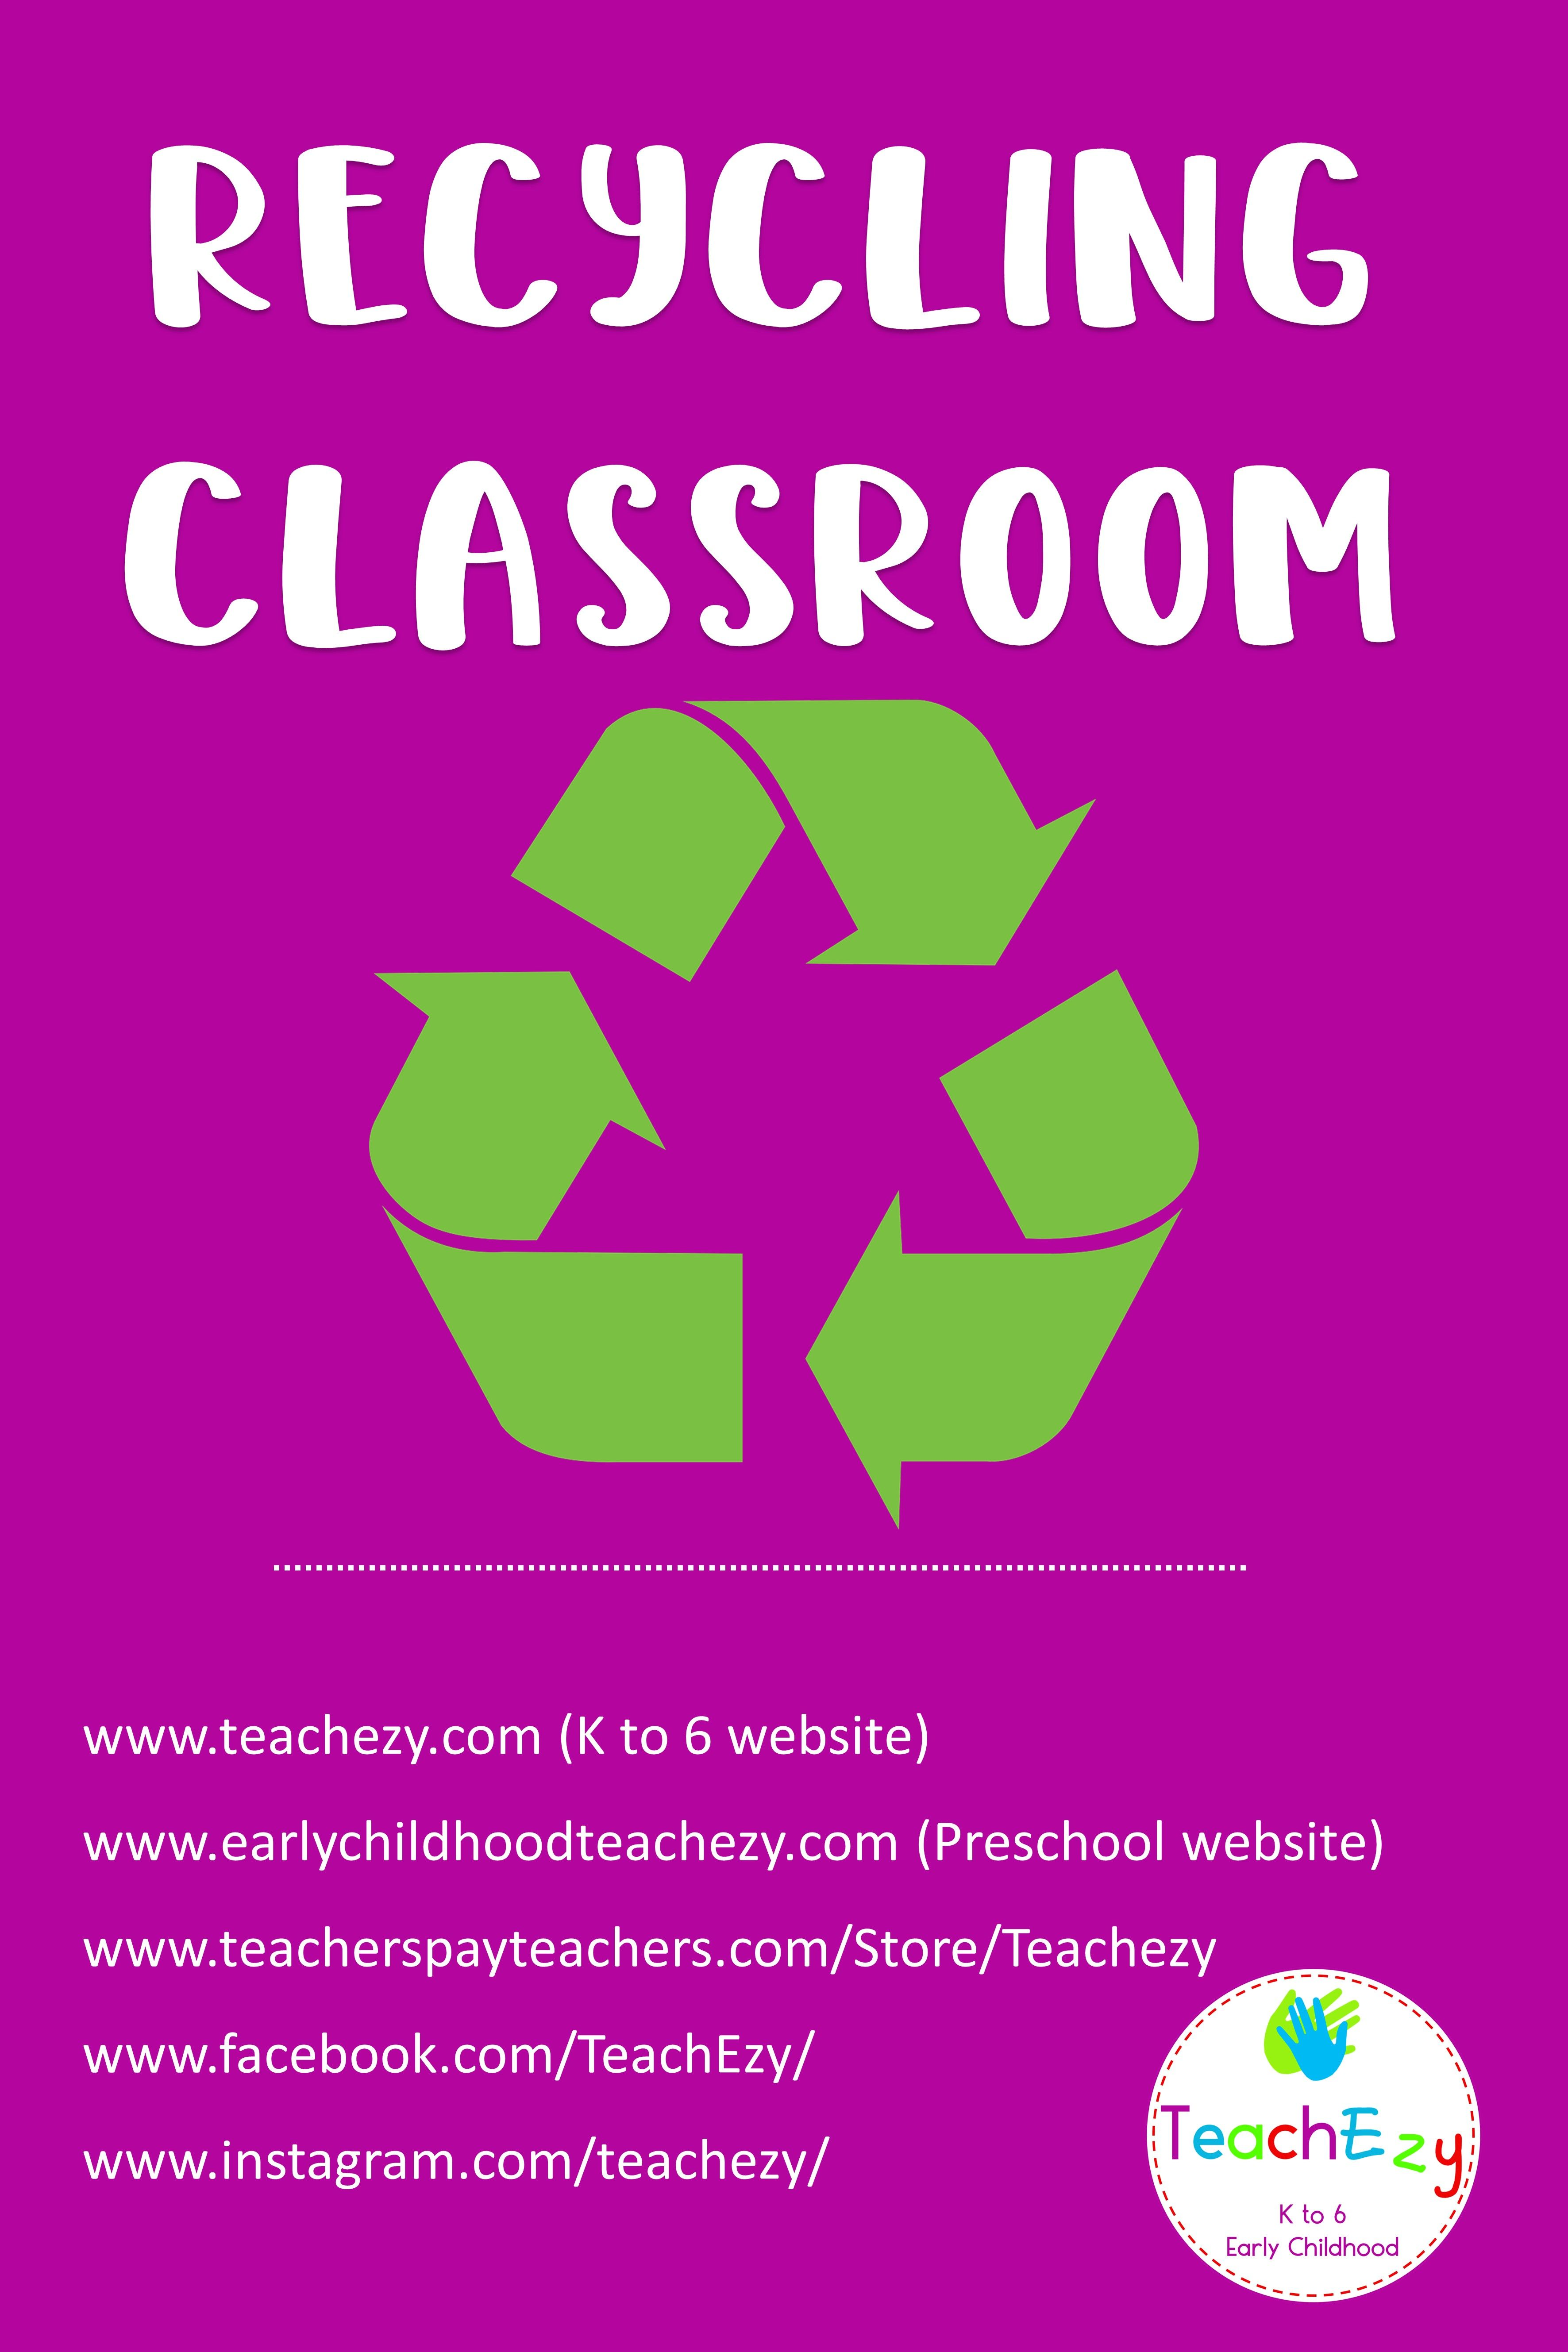 Pin By Teachezy On Recycling Classroom